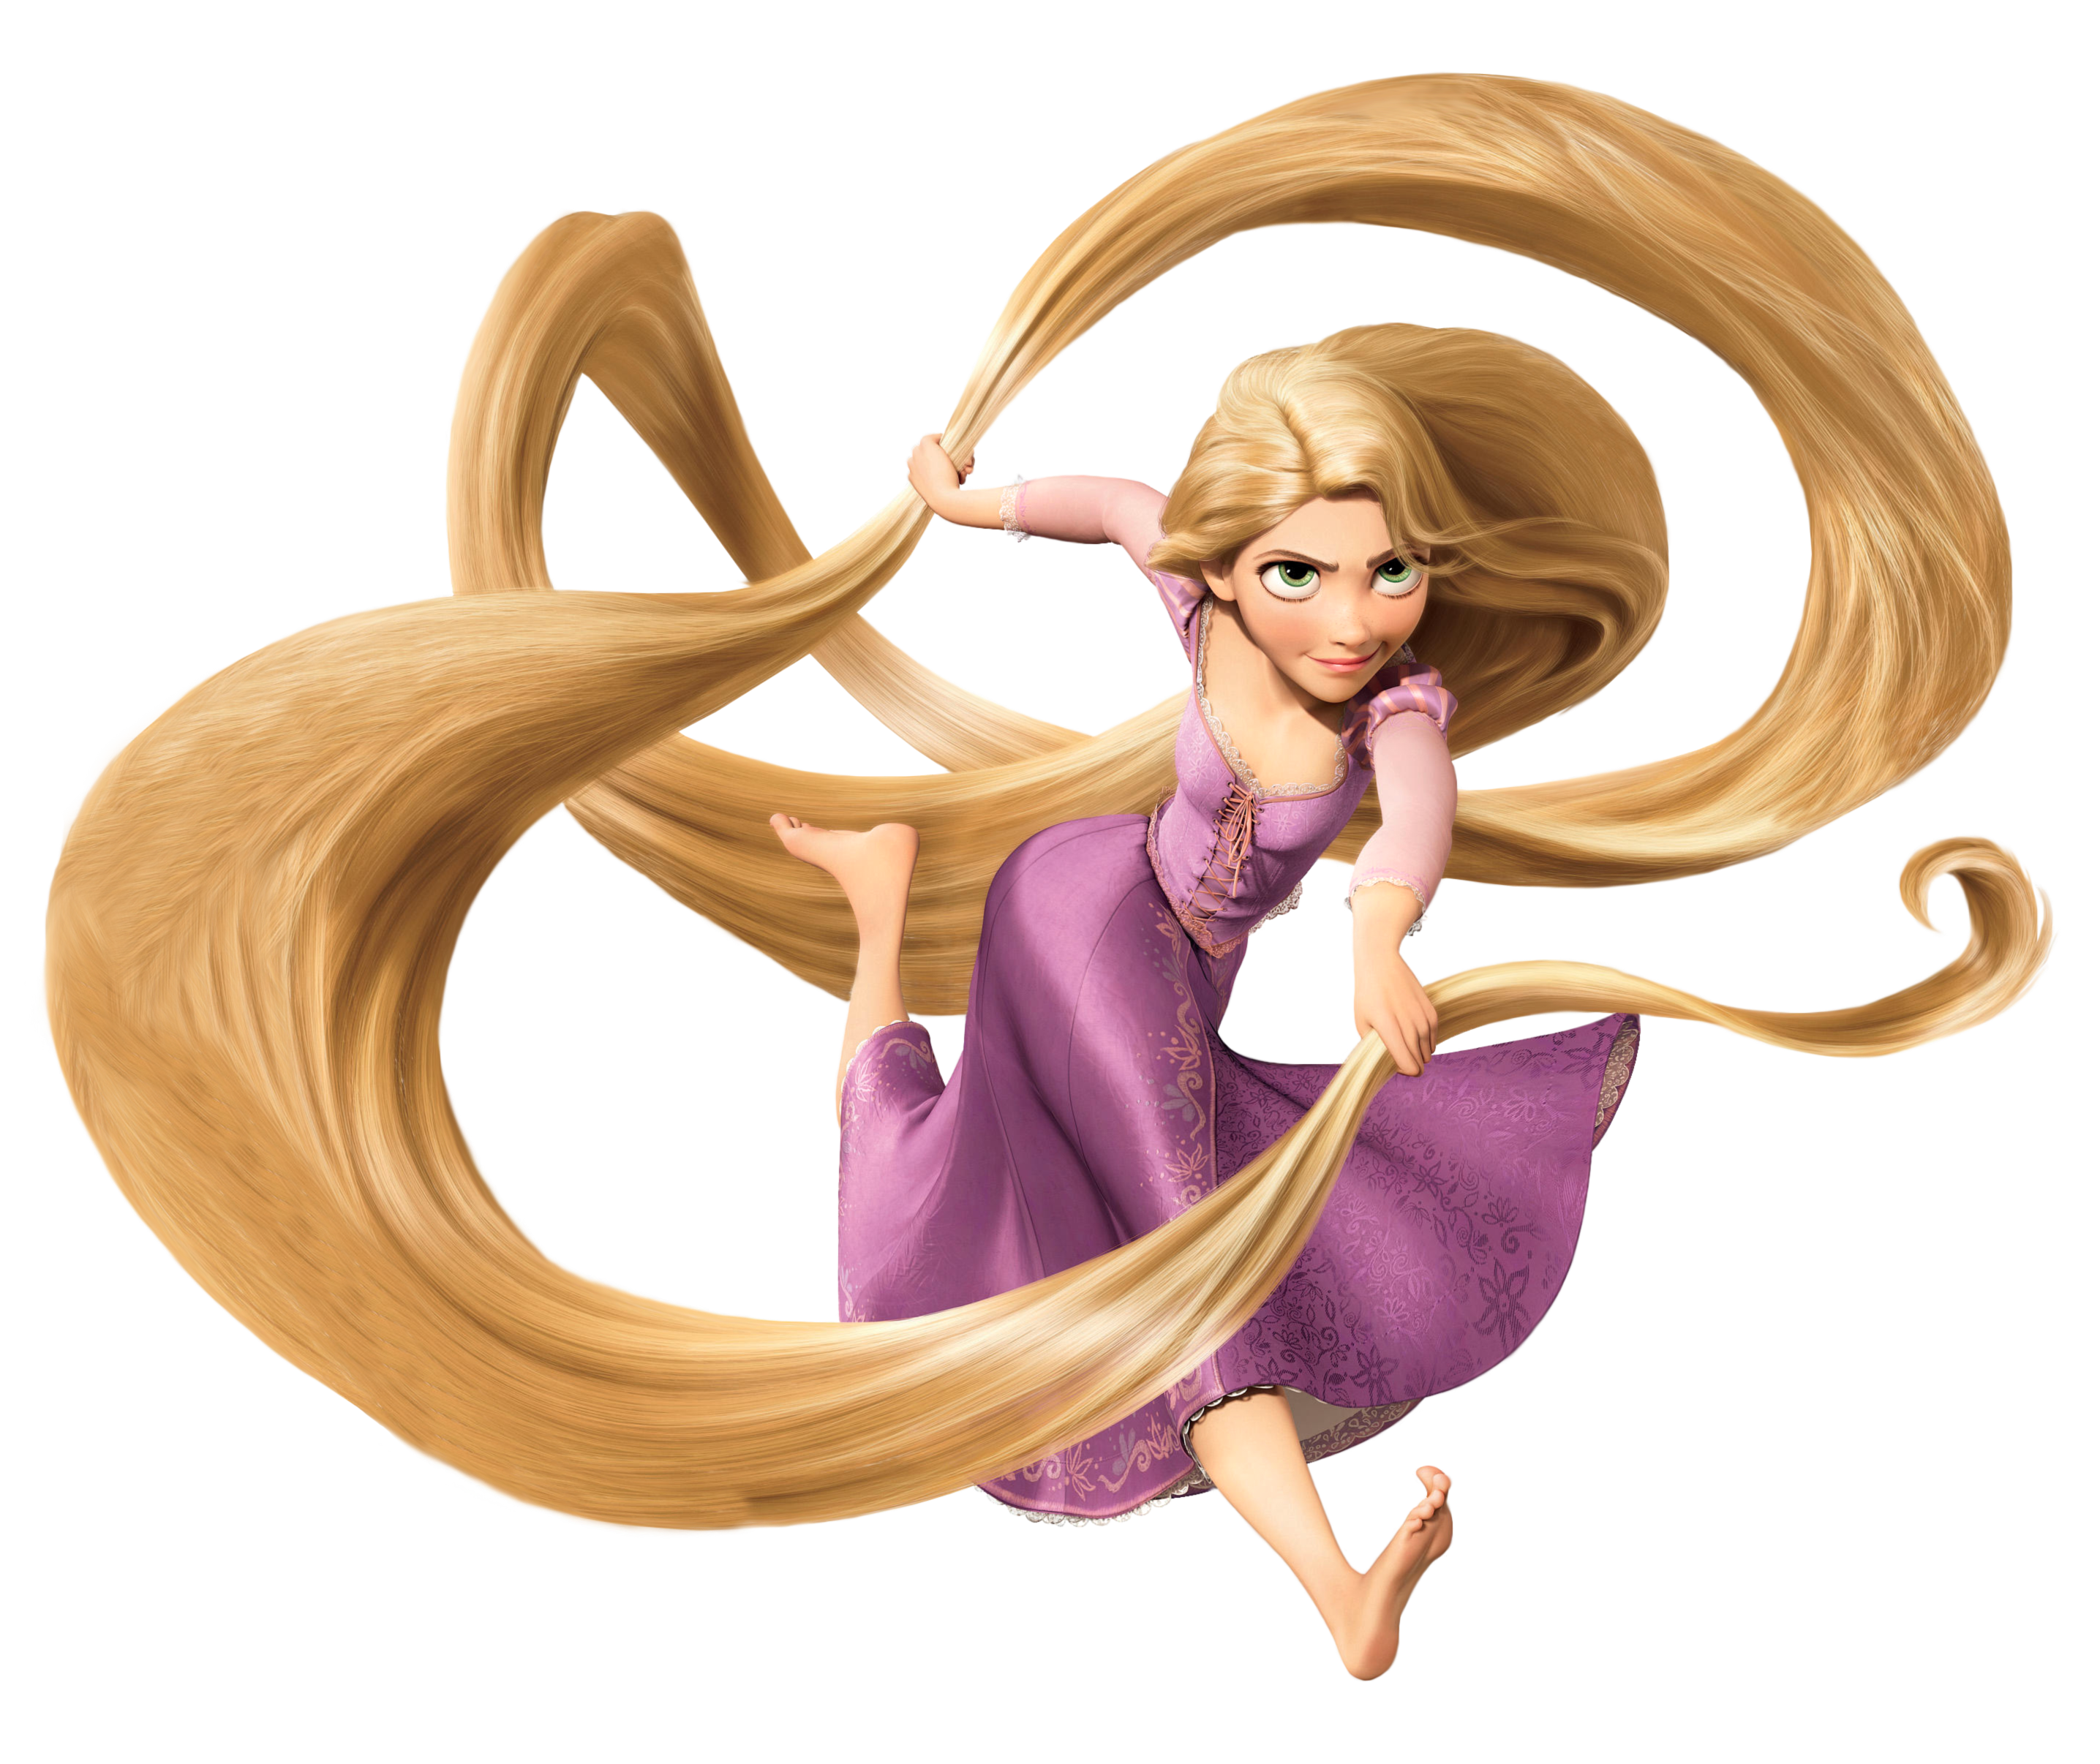 Rapunzel clipart transparent background. Png gallery yopriceville high